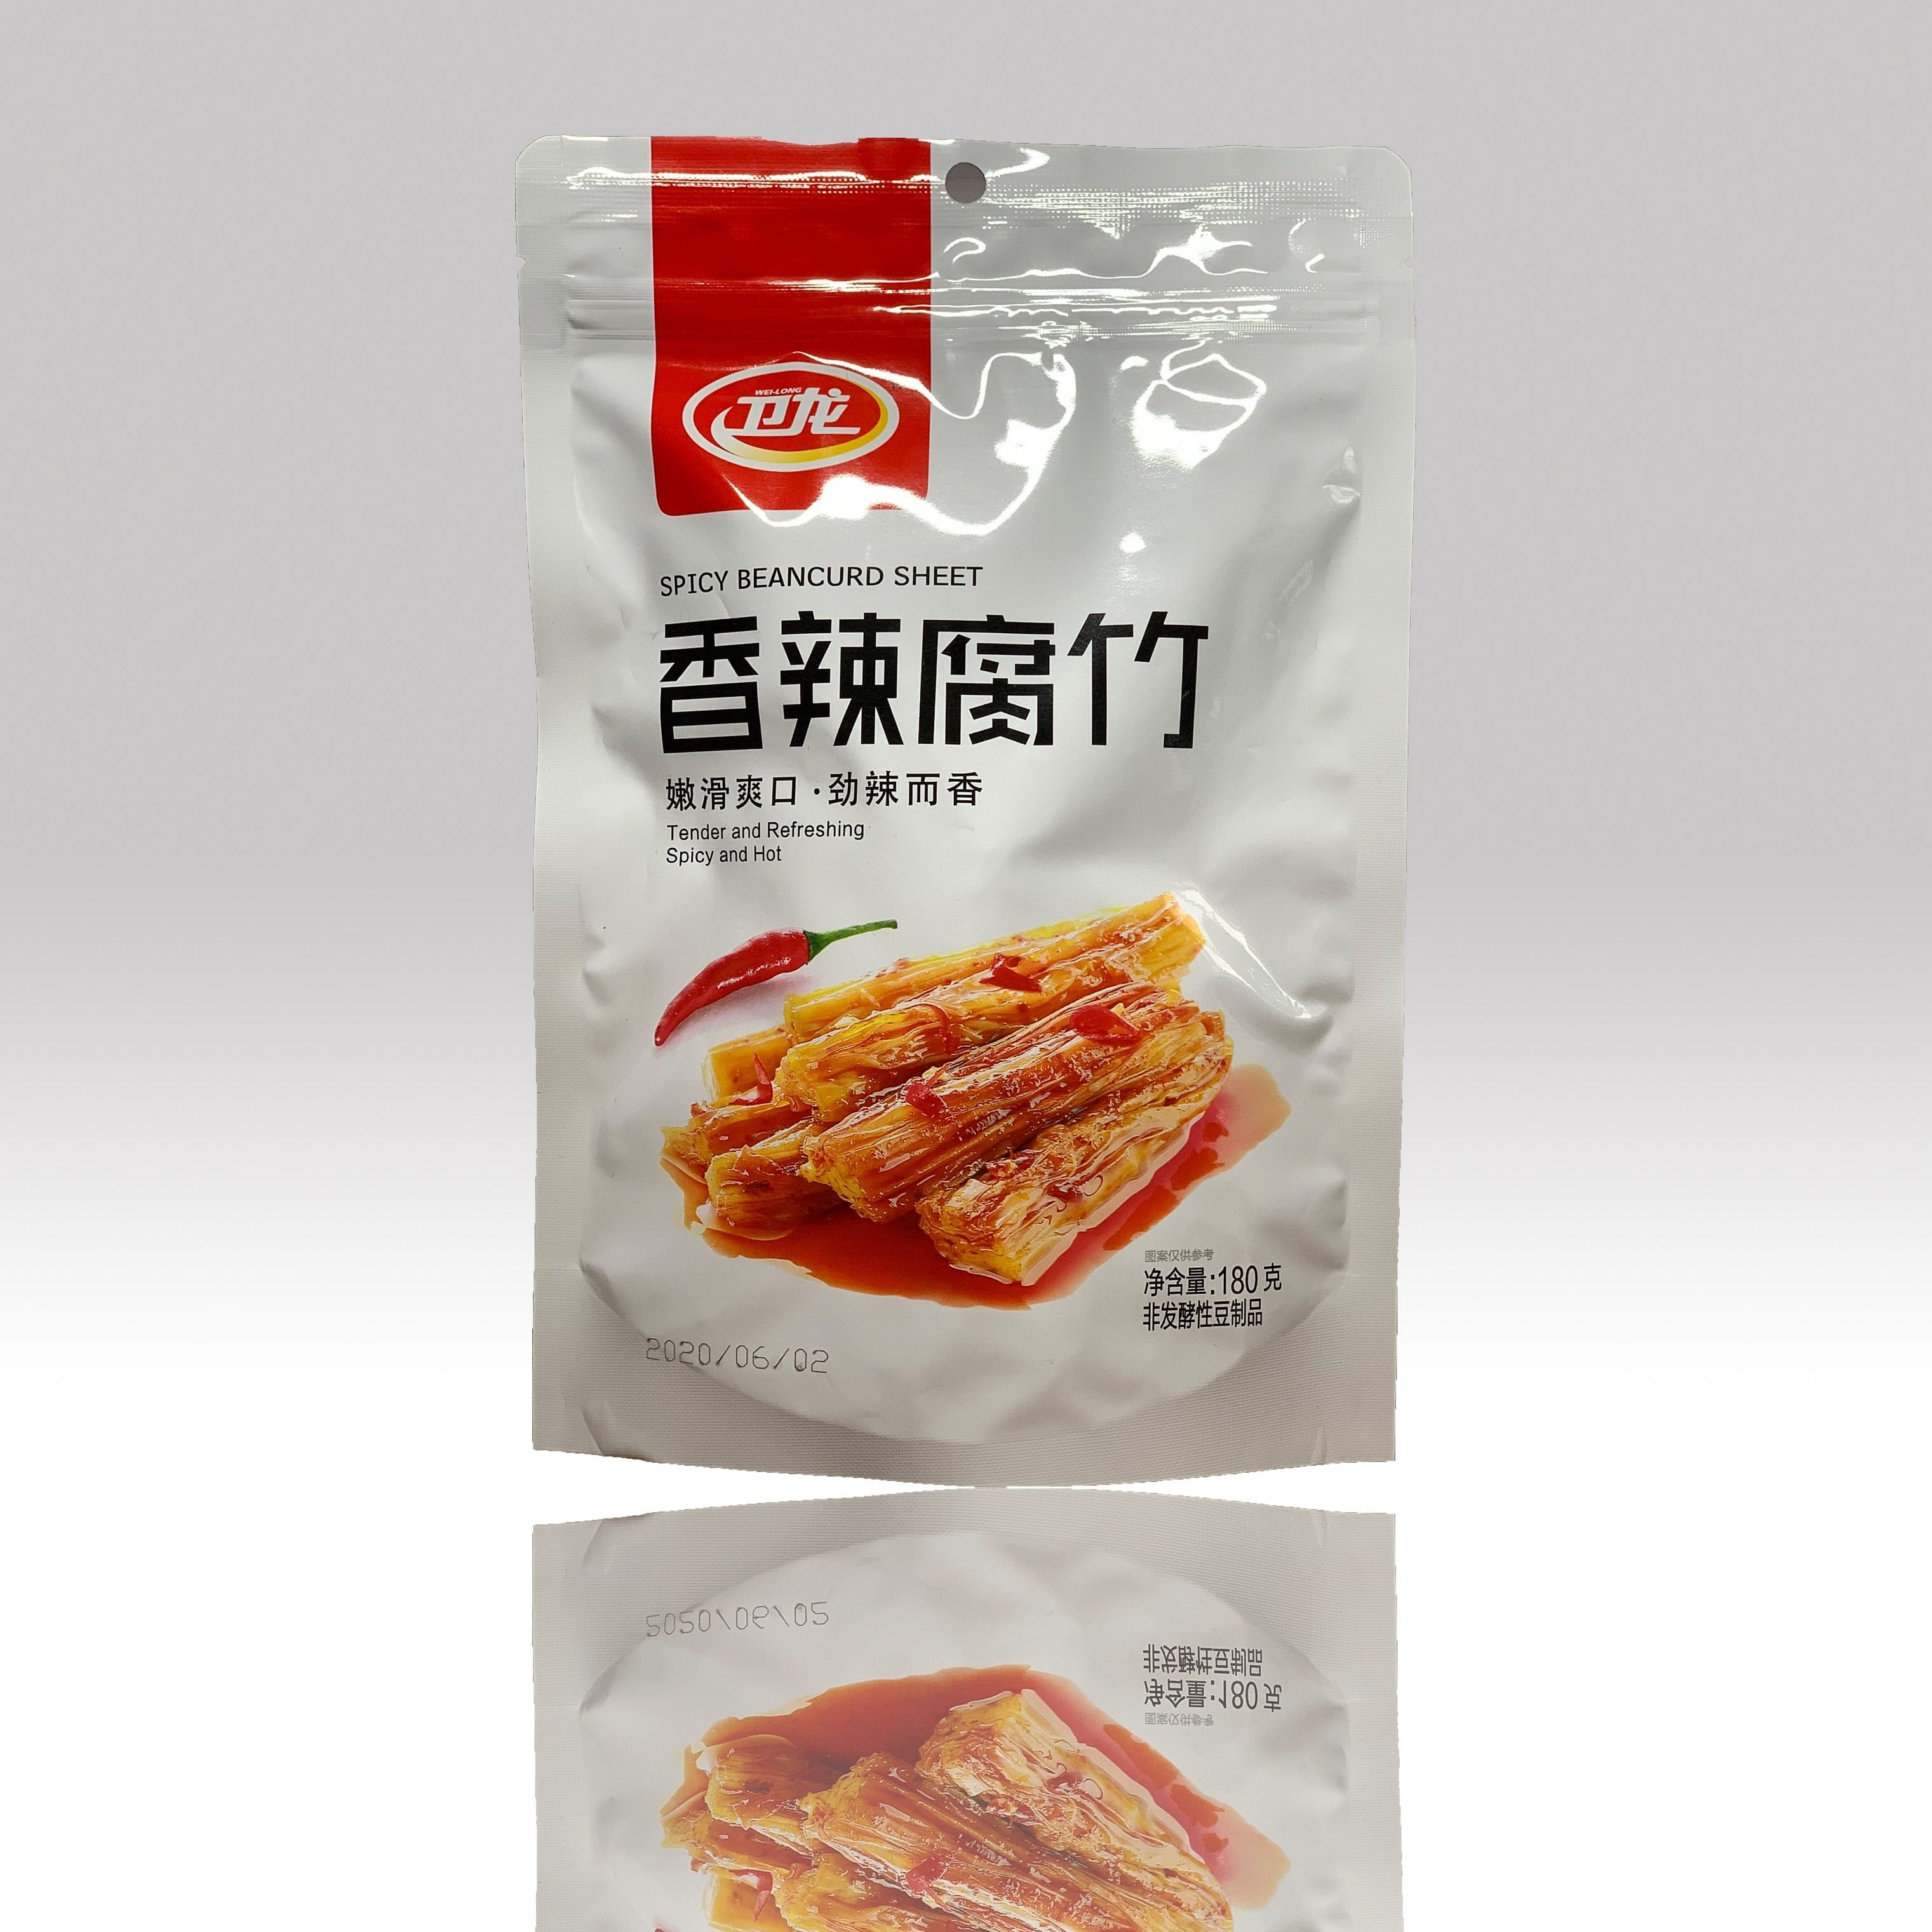 卫龙 香辣腐竹 180g, WeiLong Spicy Beancurd Sheet 180g